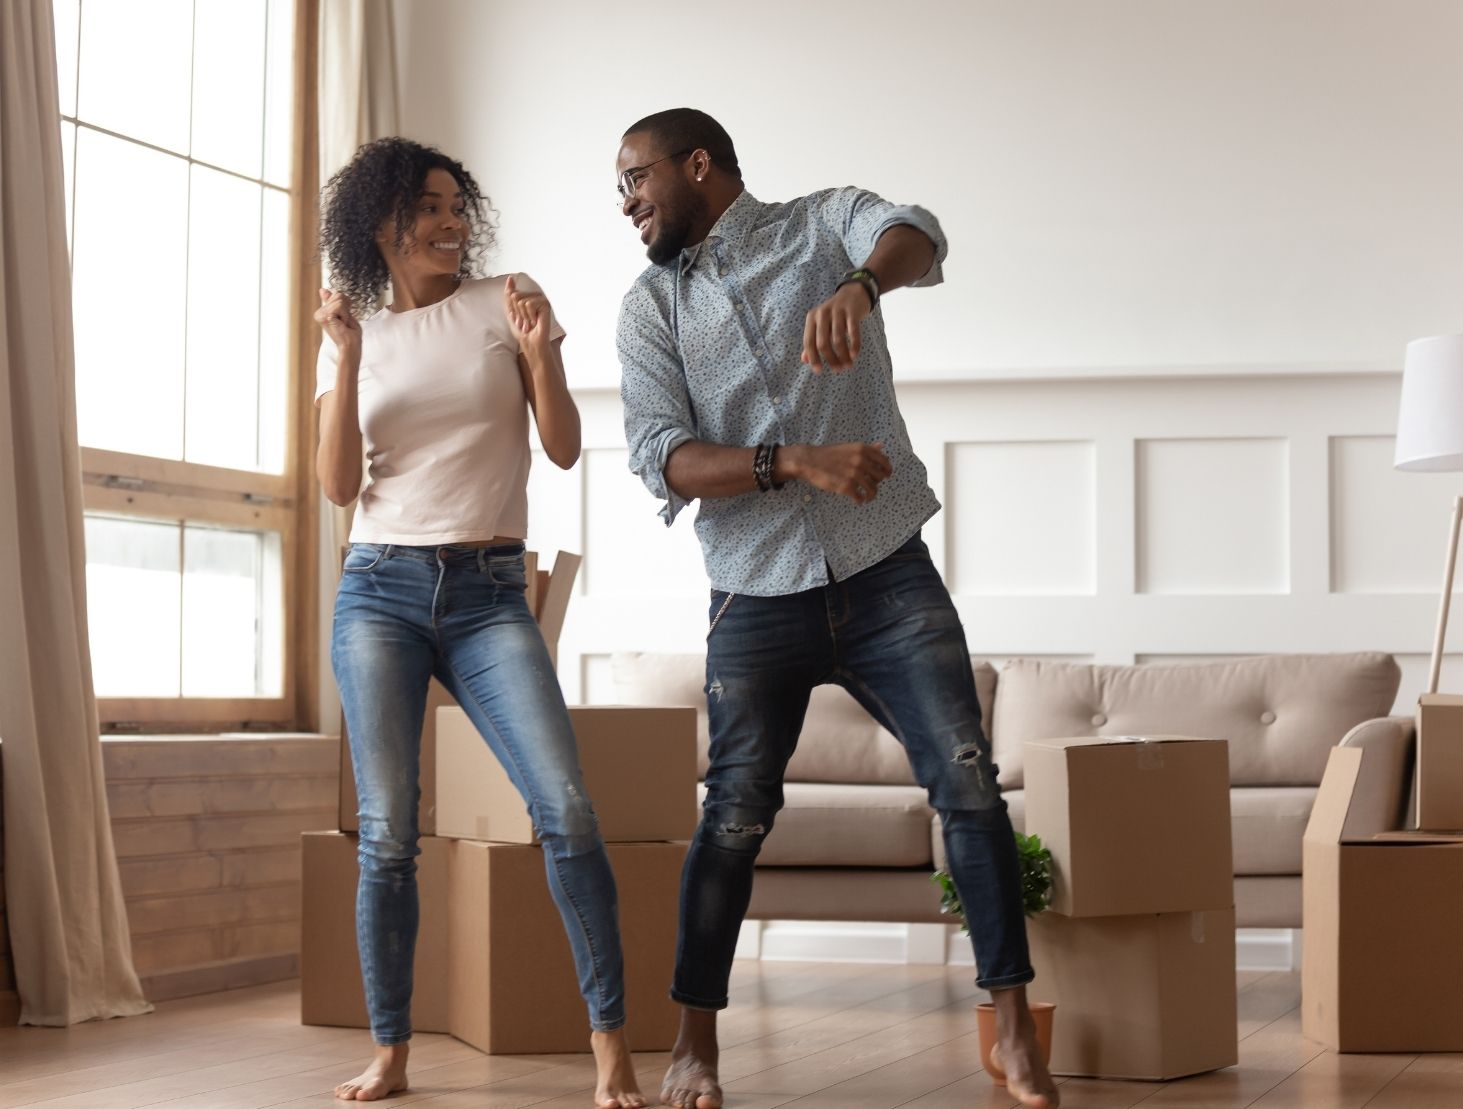 Couple dancing happily in new home